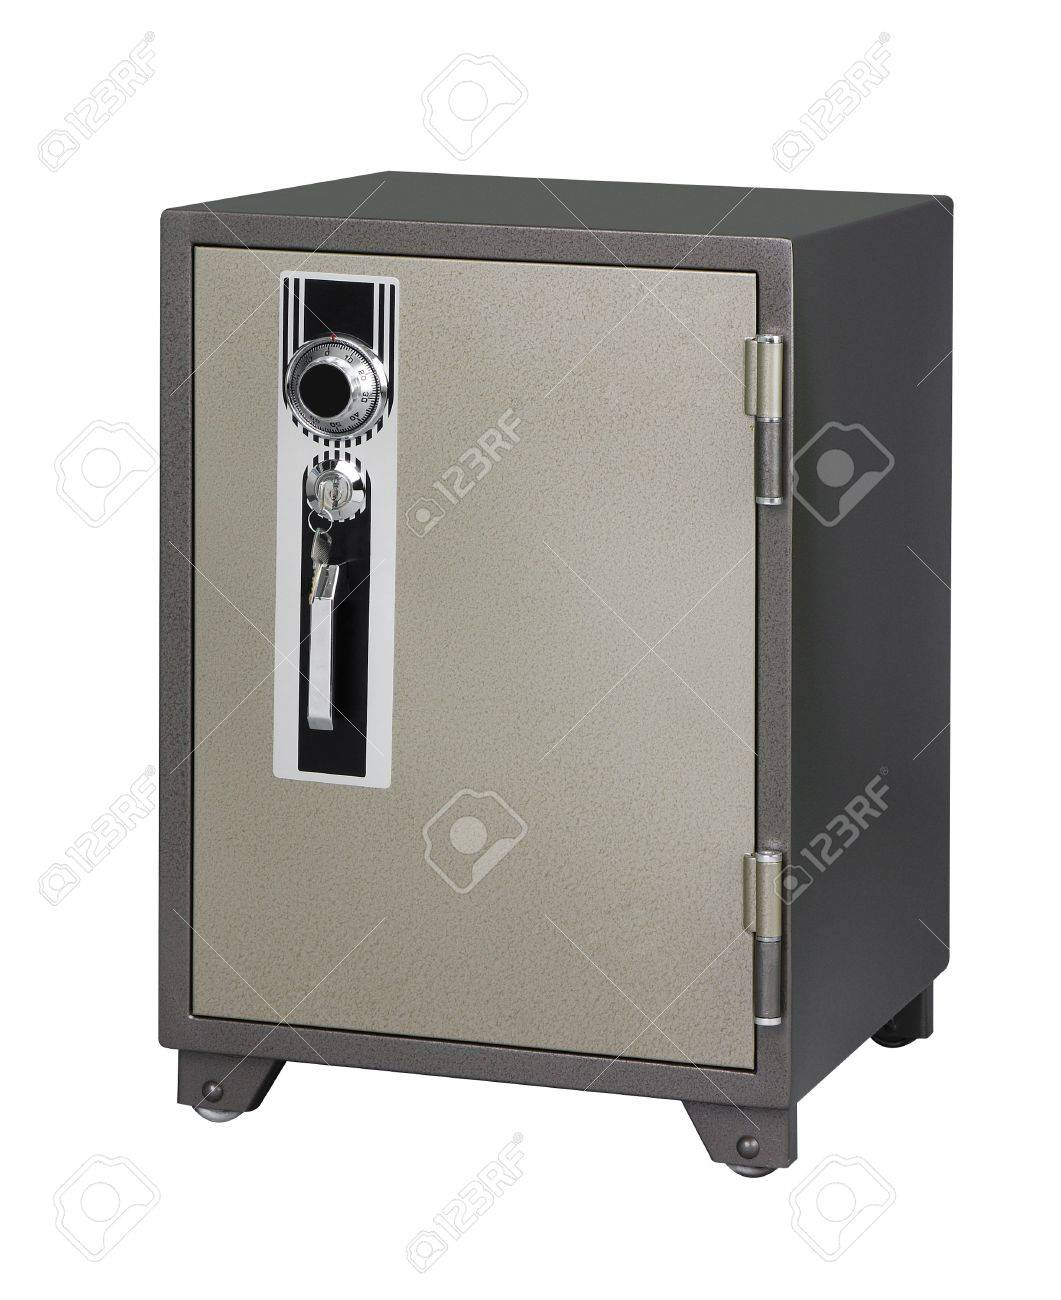 Security safe isloated on white Stock Photo - 16653778